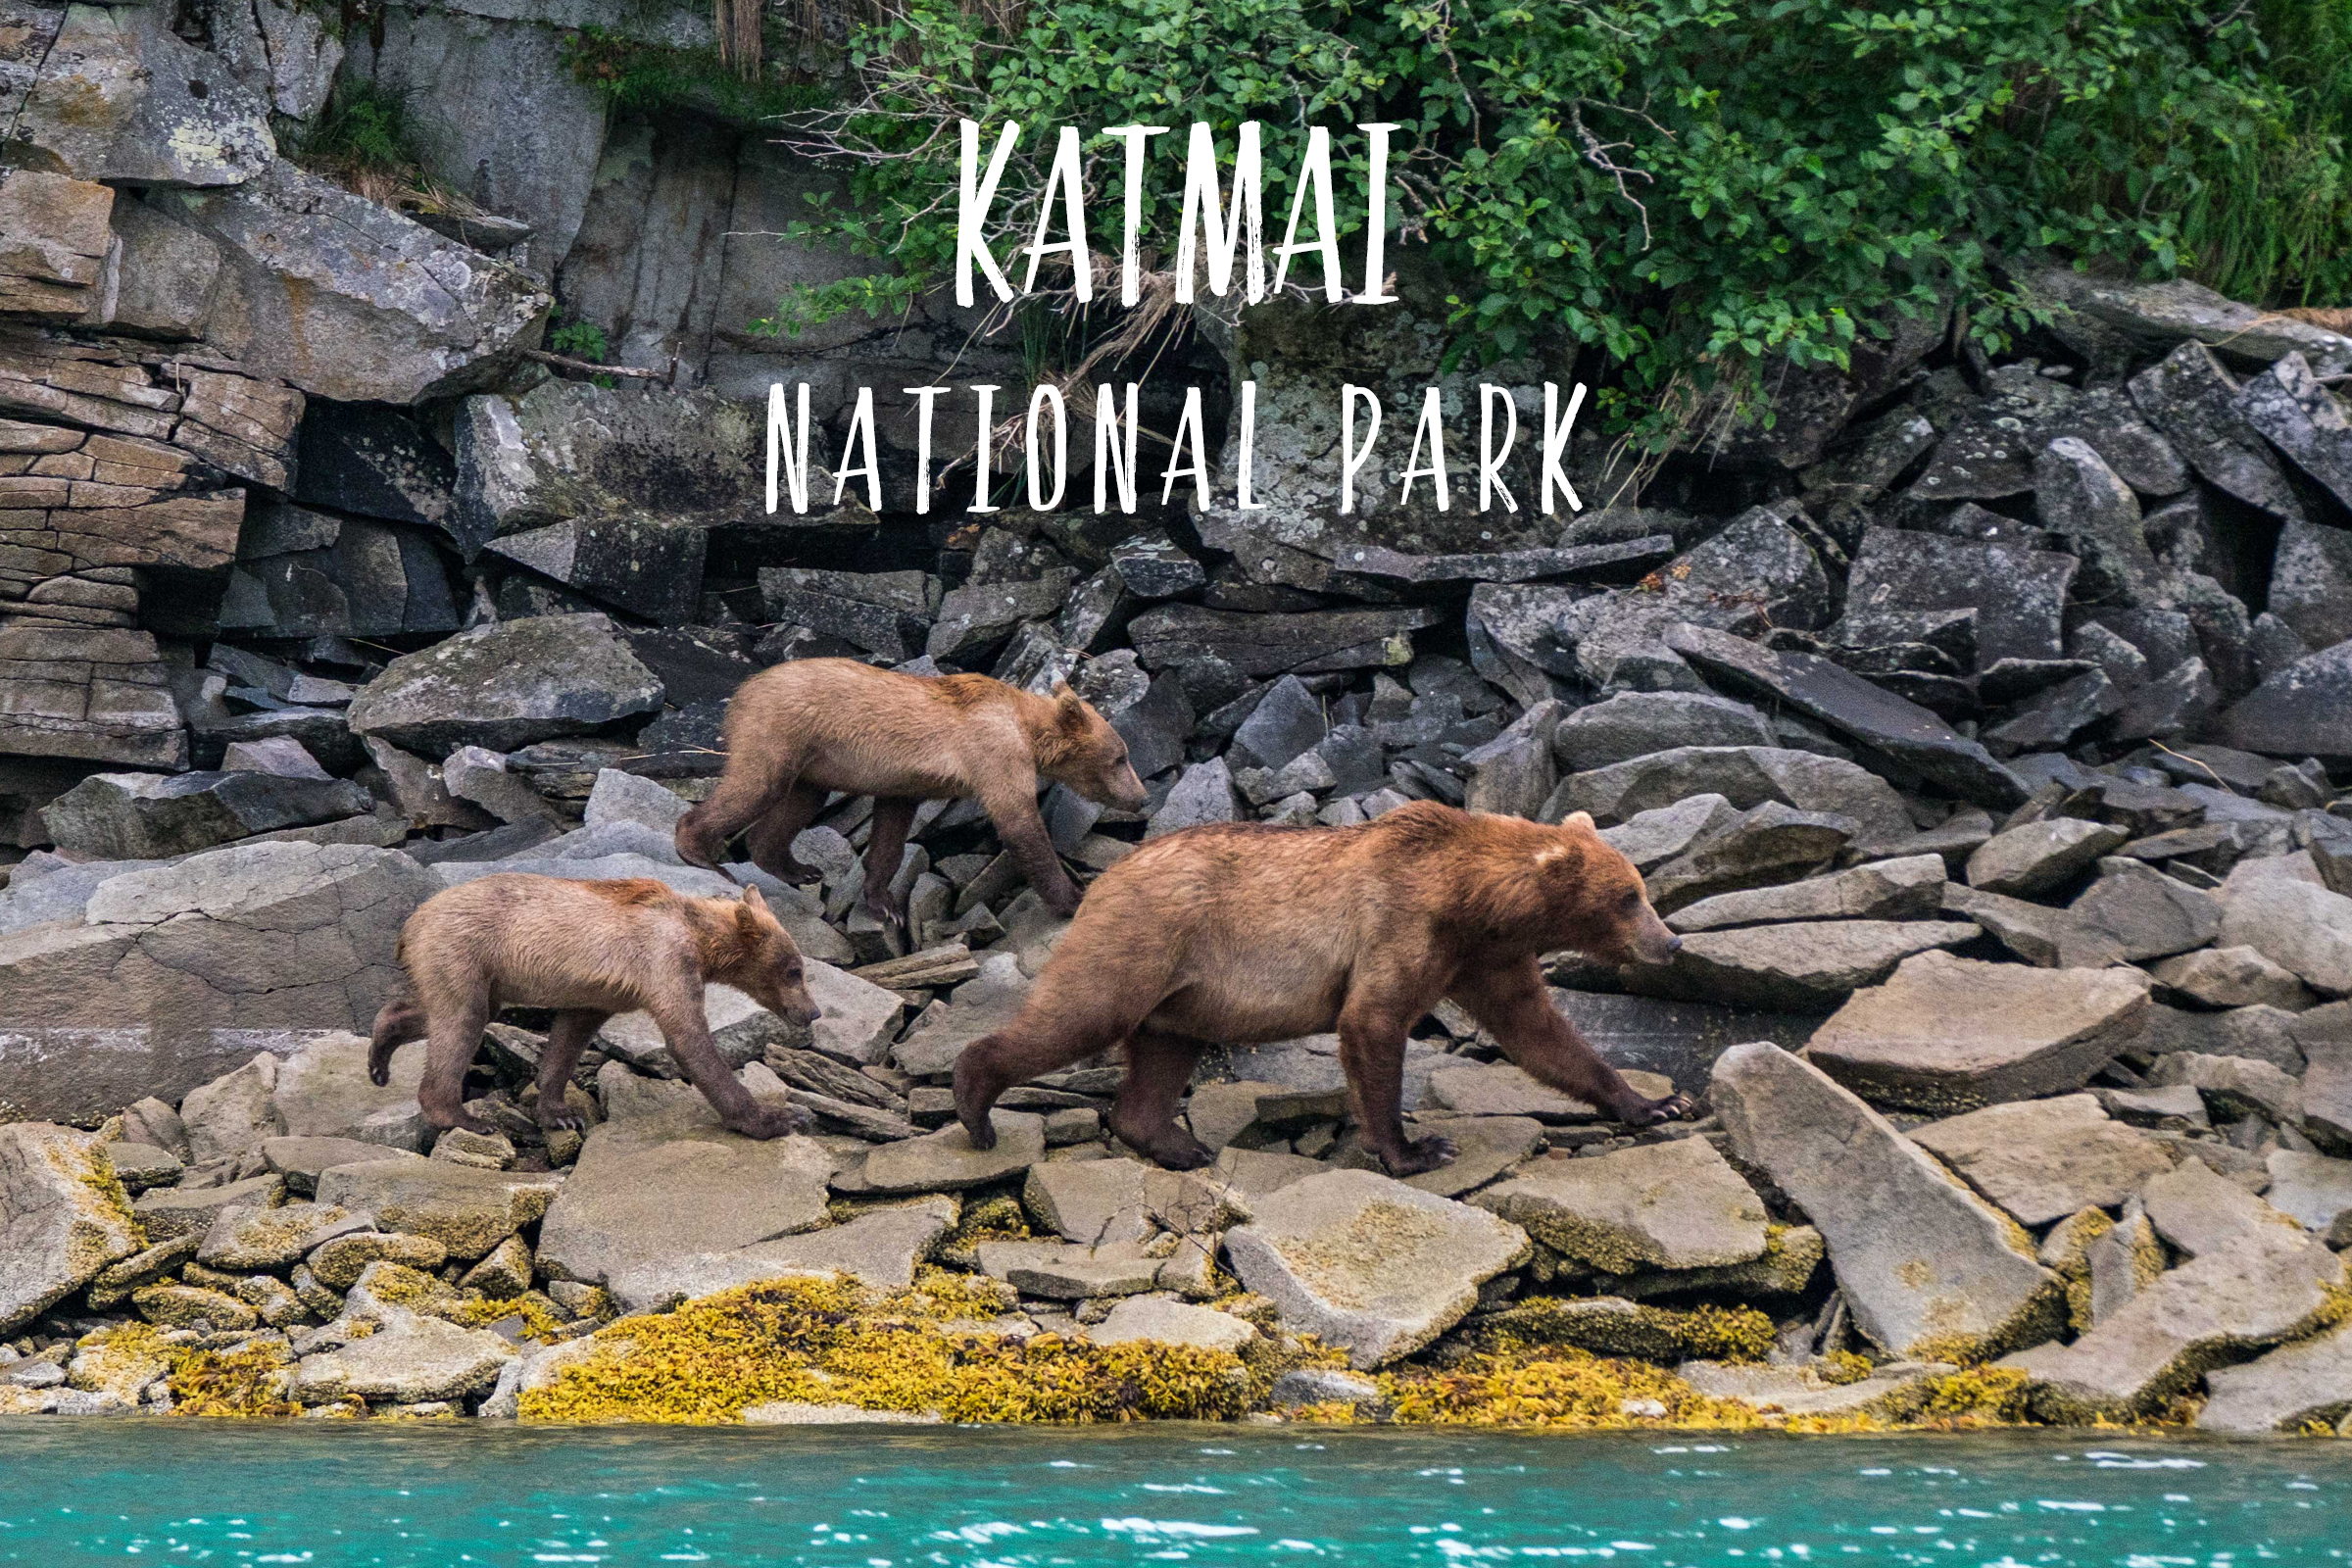 Park 32/59: Katmai National Park in Alaska